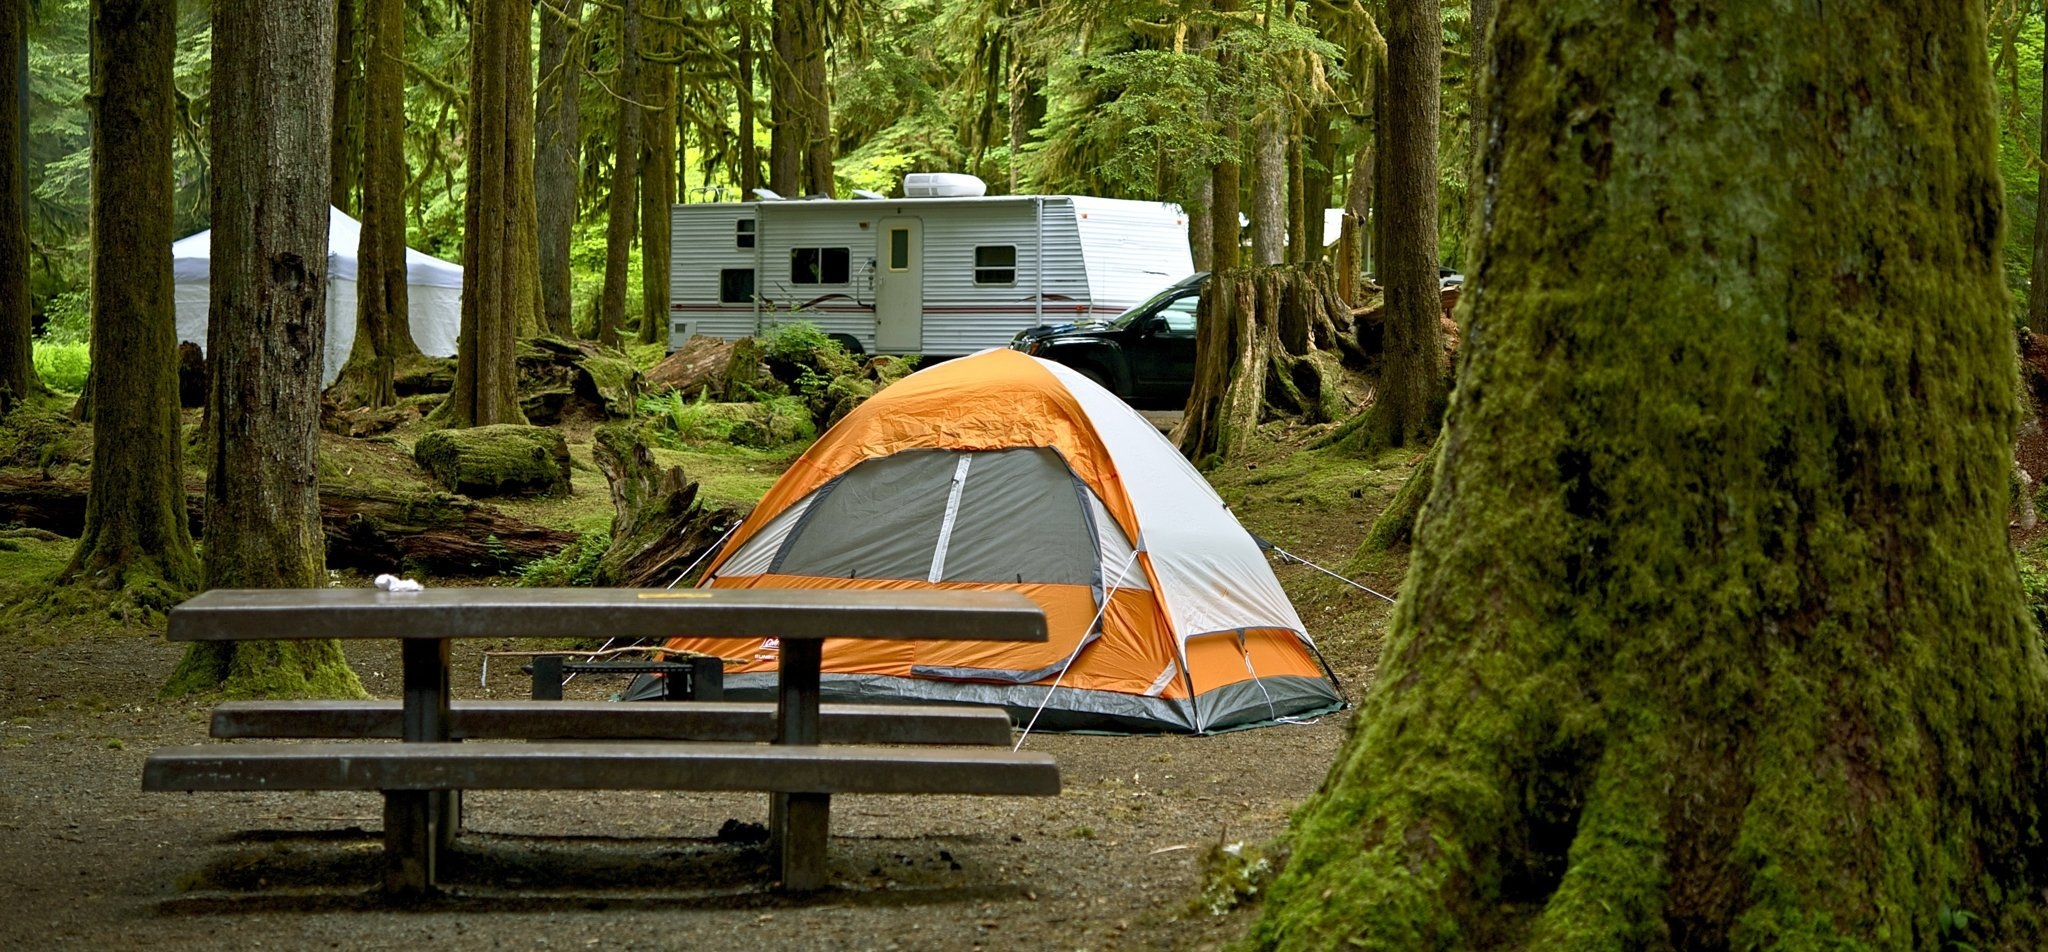 9 Tips For Finding Free Camping Spots In The U.S.